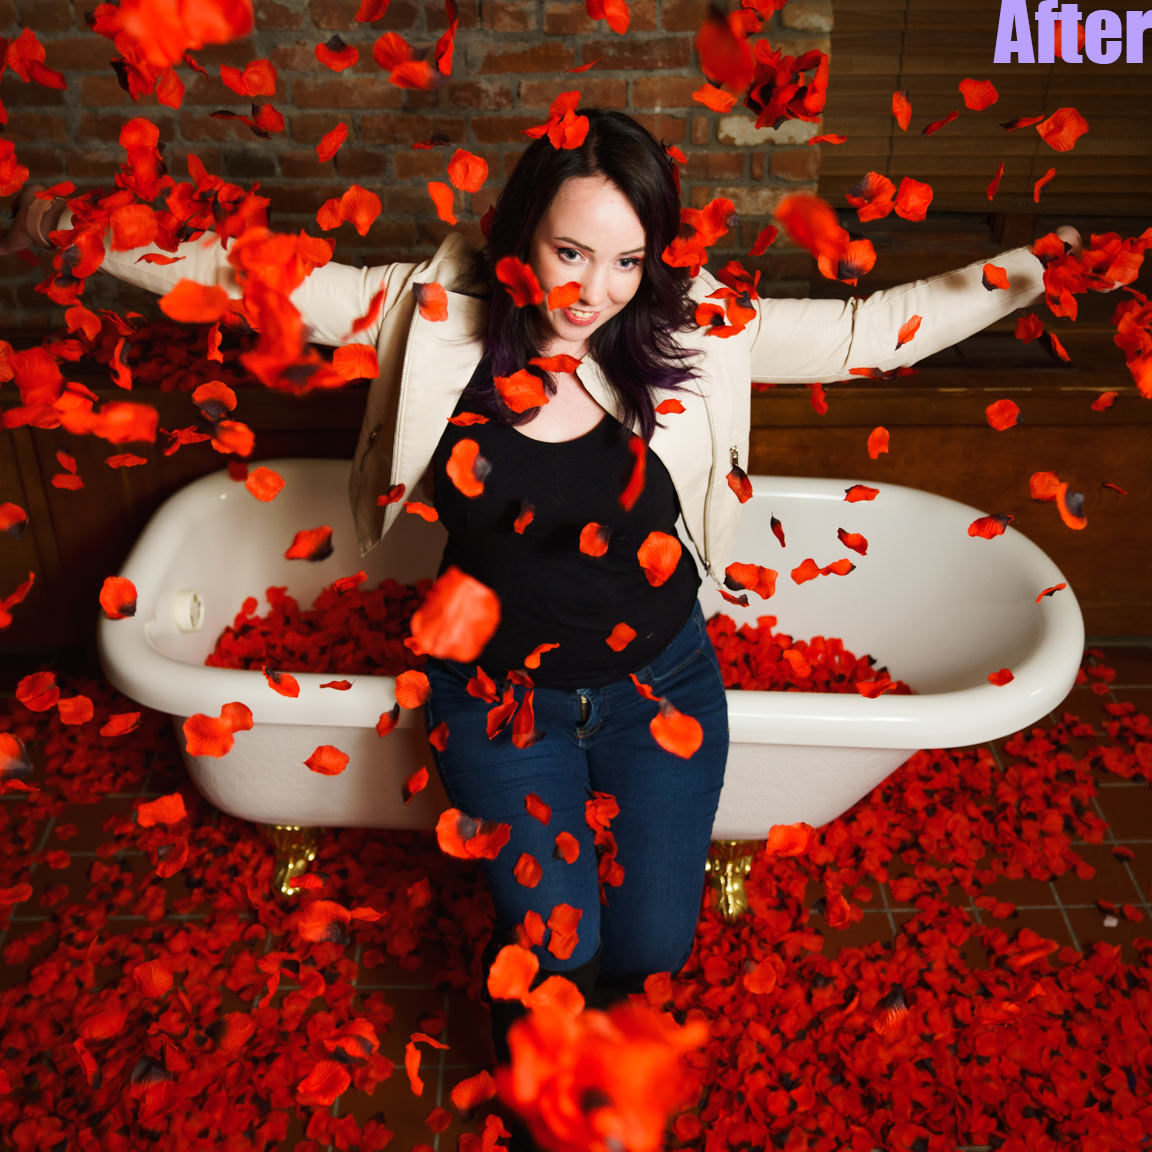 after edit-woman throwing roses